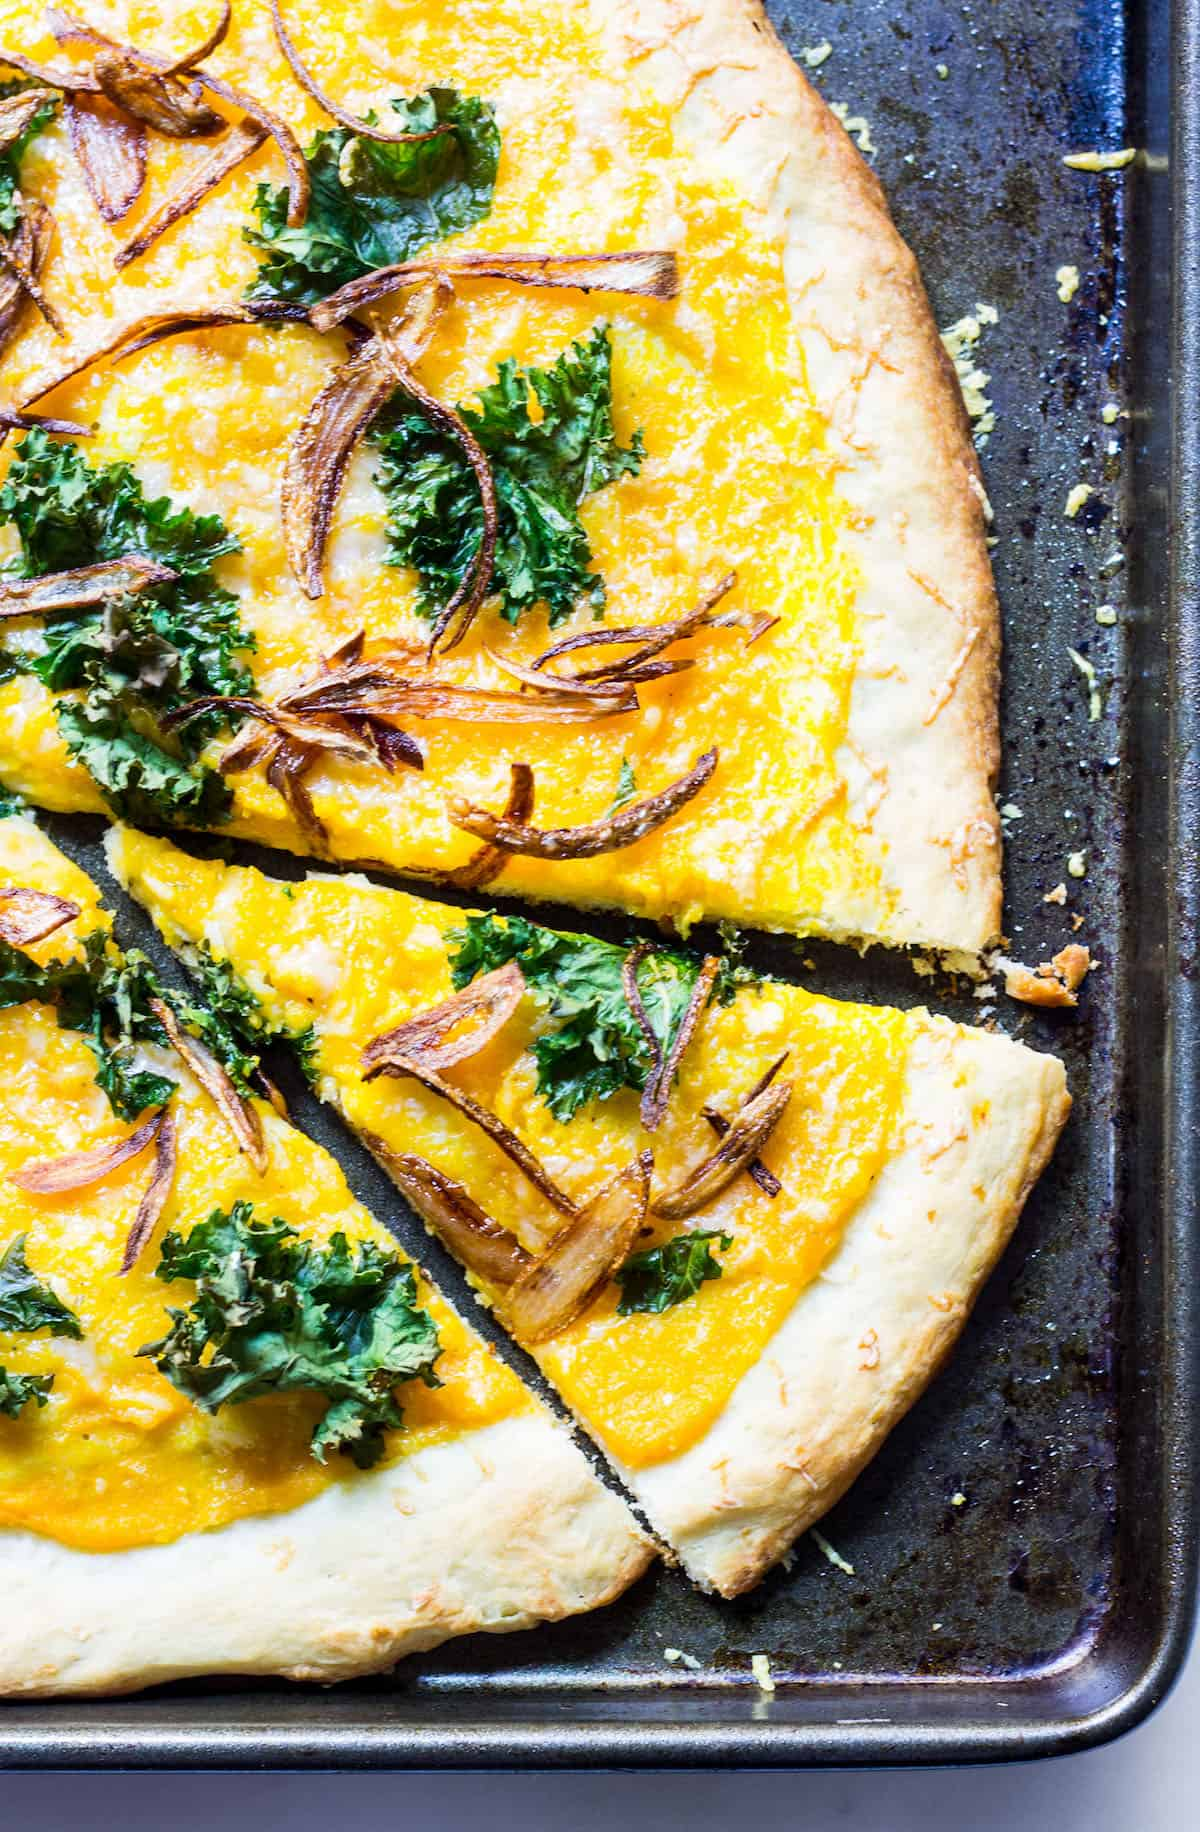 Butternut Squash Pizza: a fall pizza made with butternut squash sauce, gruyere cheese, crispy kale, and crispy shallots all on a homemade pizza crust. Recipe via MonPetitFour.com